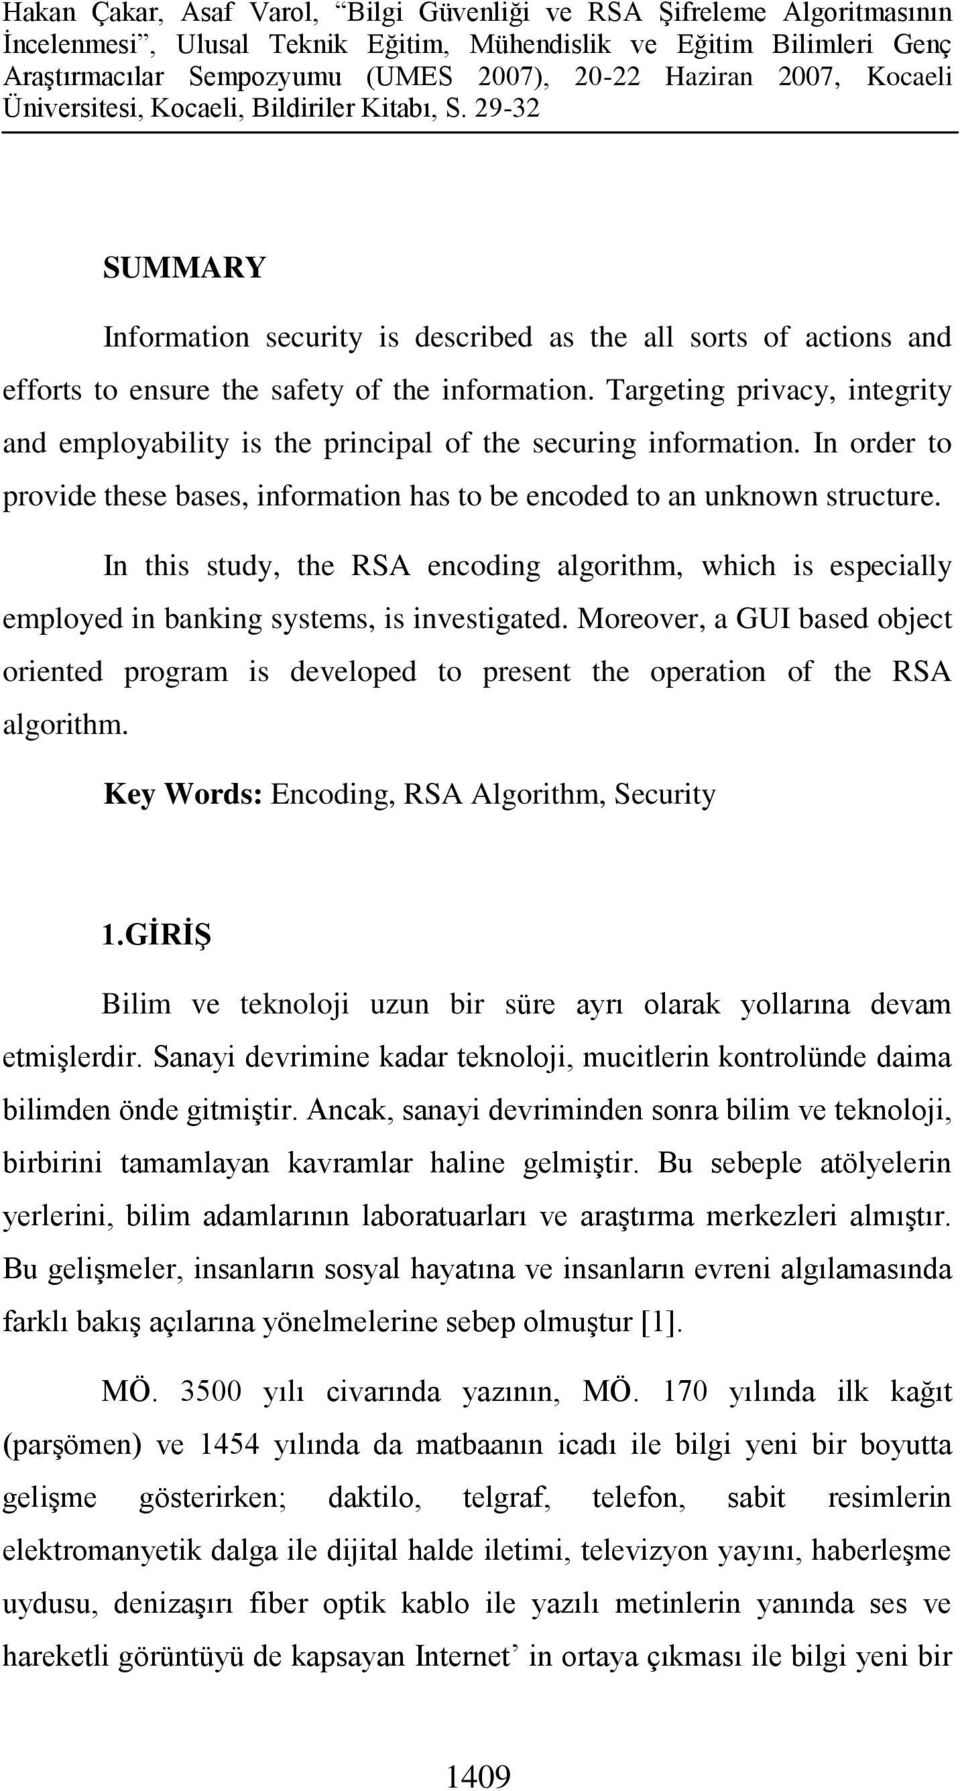 In this study, the RSA encoding algorithm, which is especially employed in banking systems, is investigated.